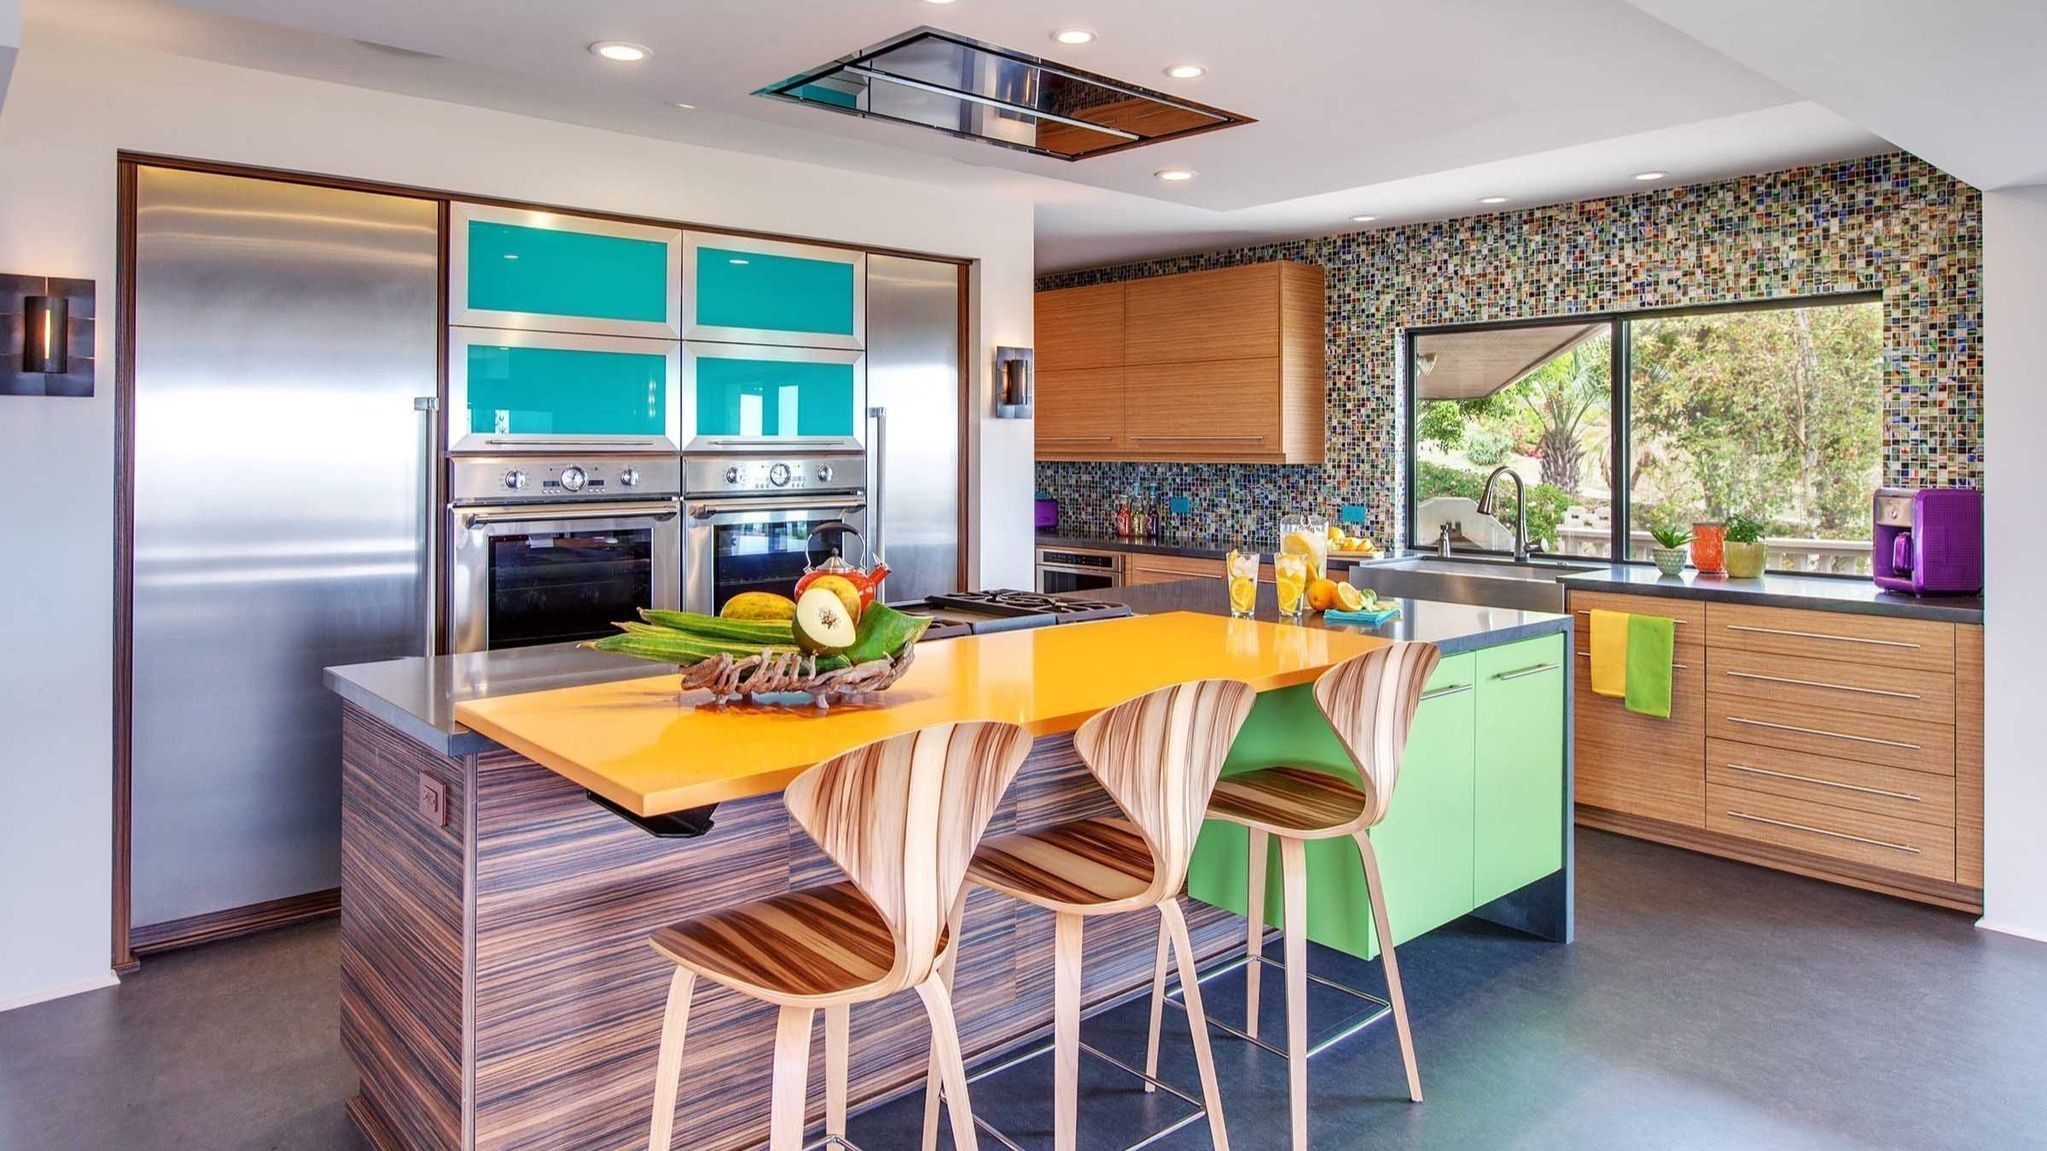 What's trending in home remodels, upgrades for 2019